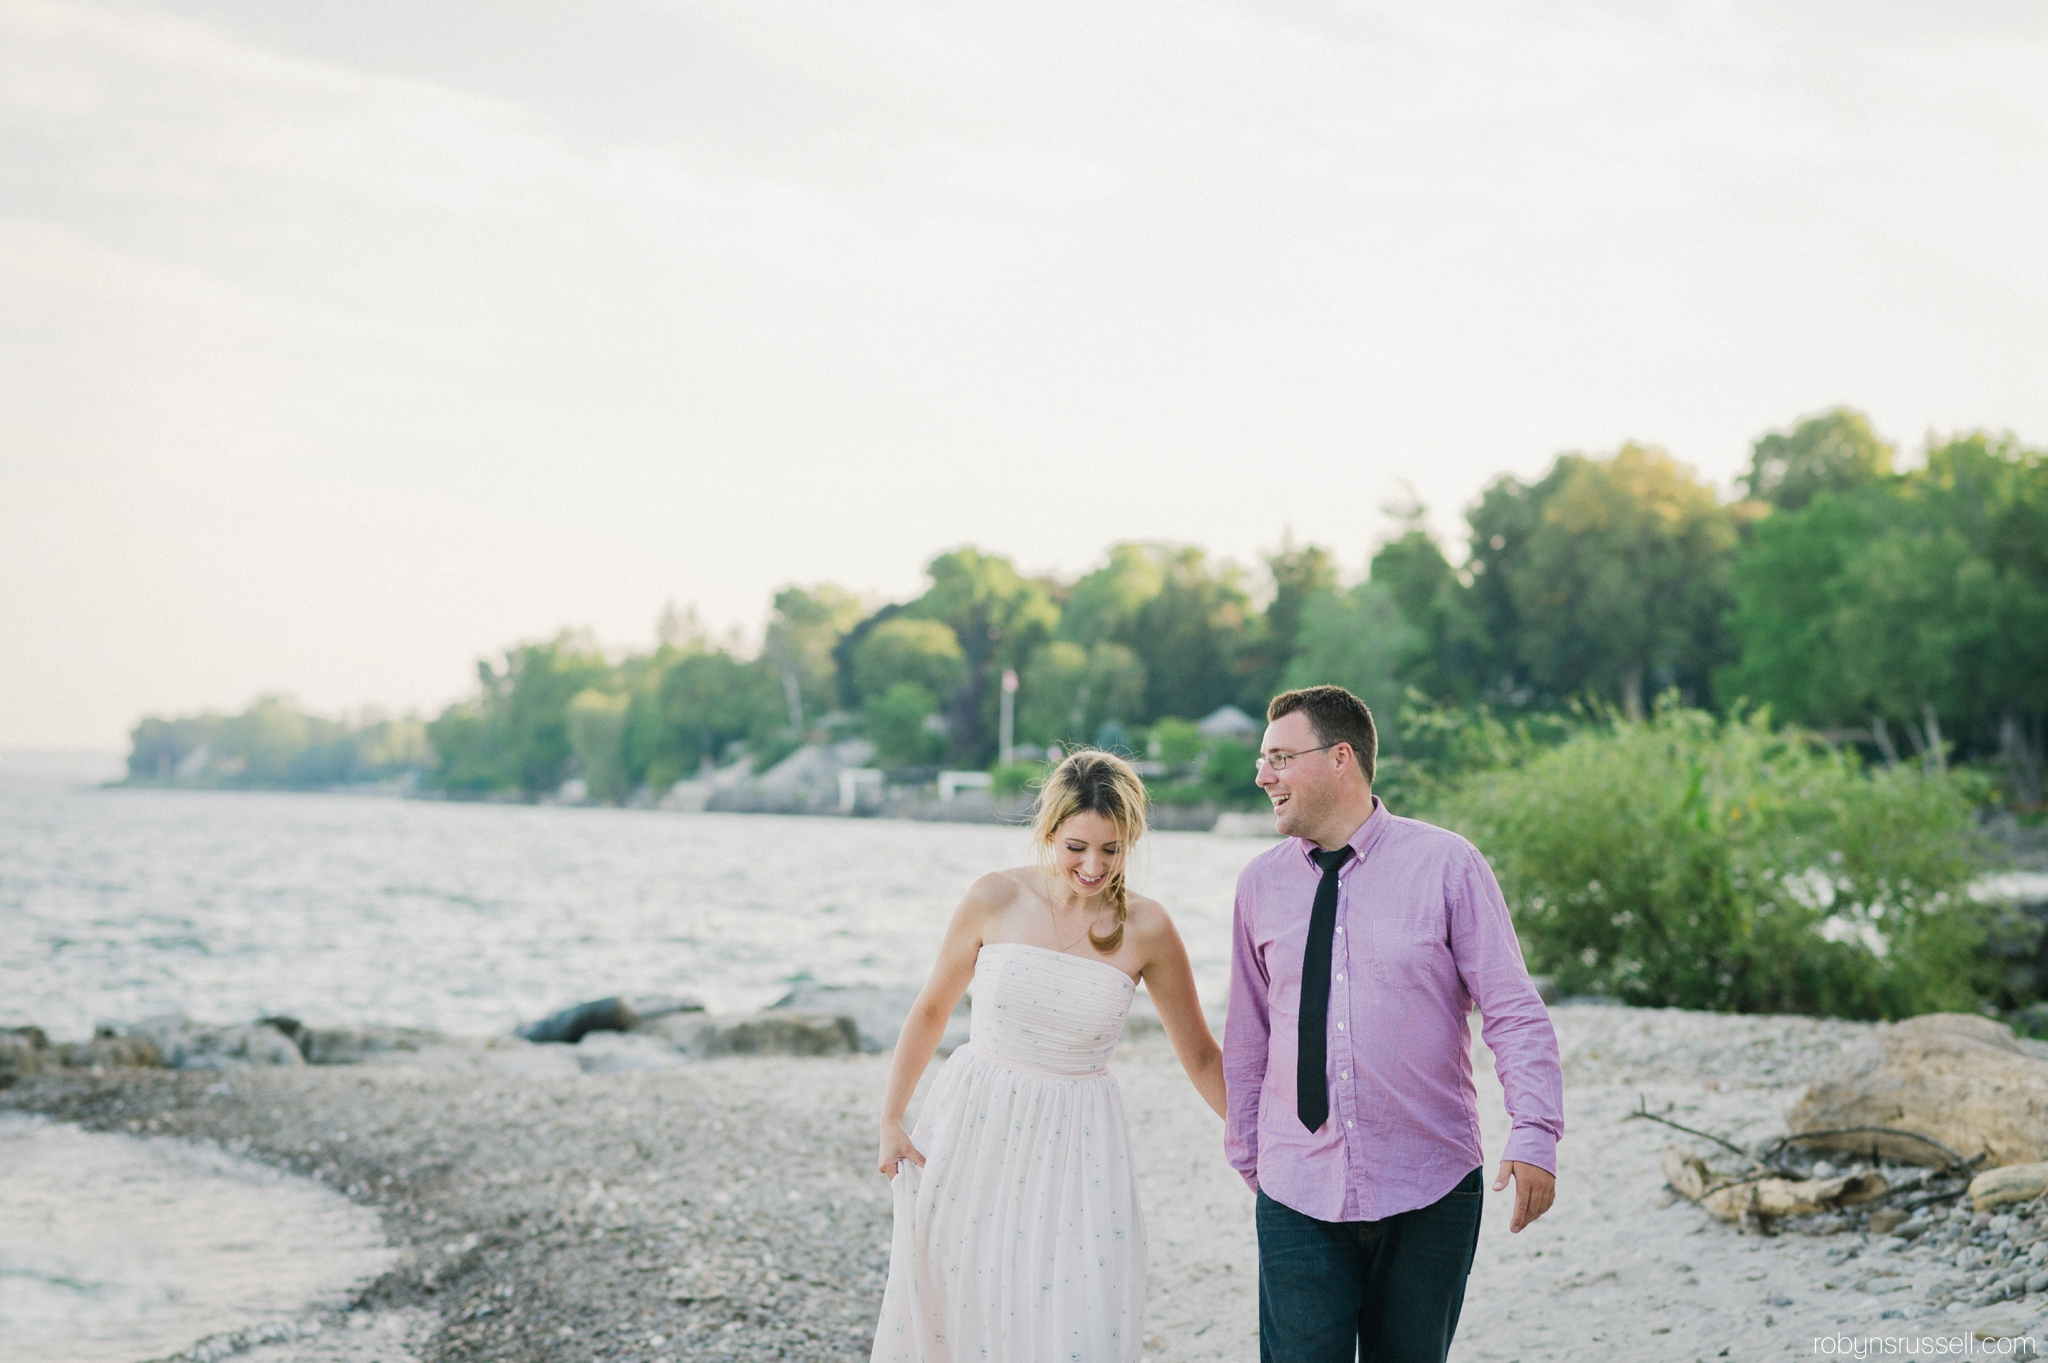 8-walking-along-the-water-burlington-paletta-engagement.jpg